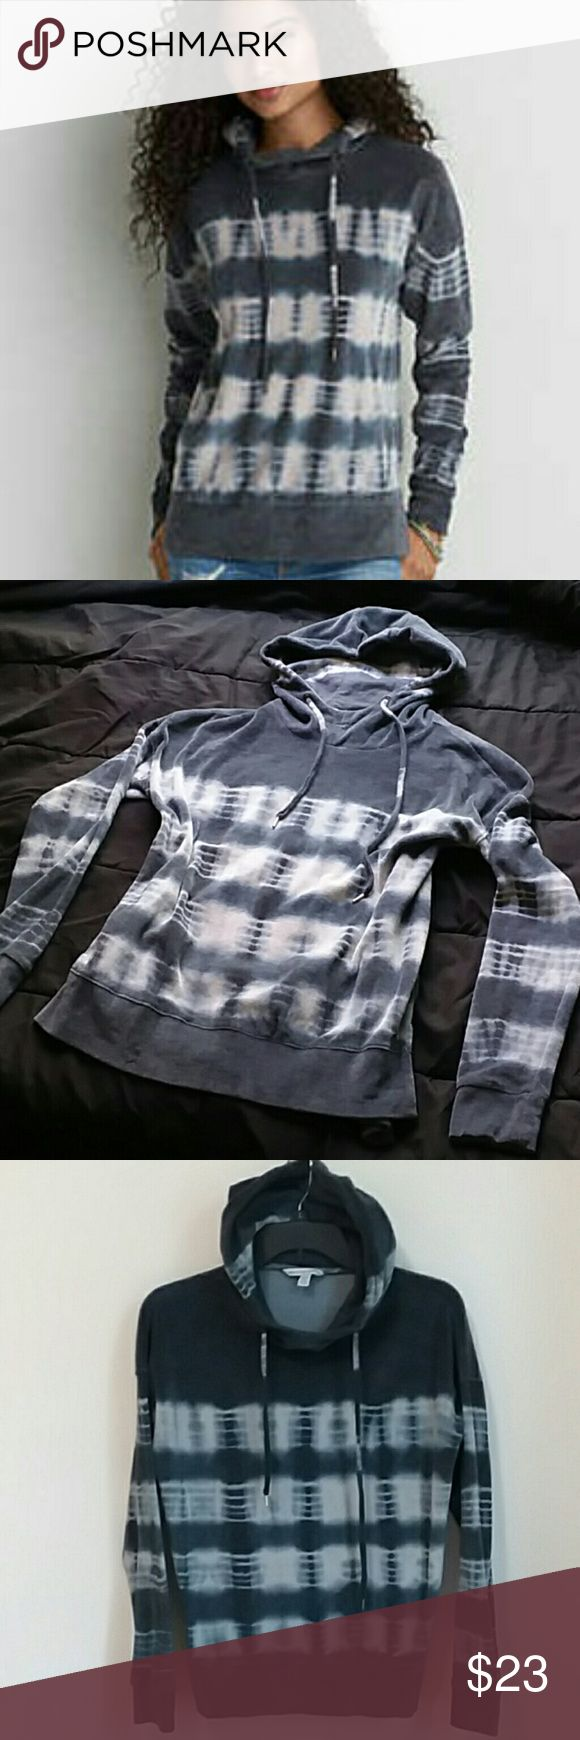 American Eagle Outfitters tye dye velour hoodie XS Greyish blue  and white tye dye hoodie with velvety material. Good used condition. Size Xs. Loose fit.  Drawstring hood. American Eagle Outfitters Tops Sweatshirts & Hoodies